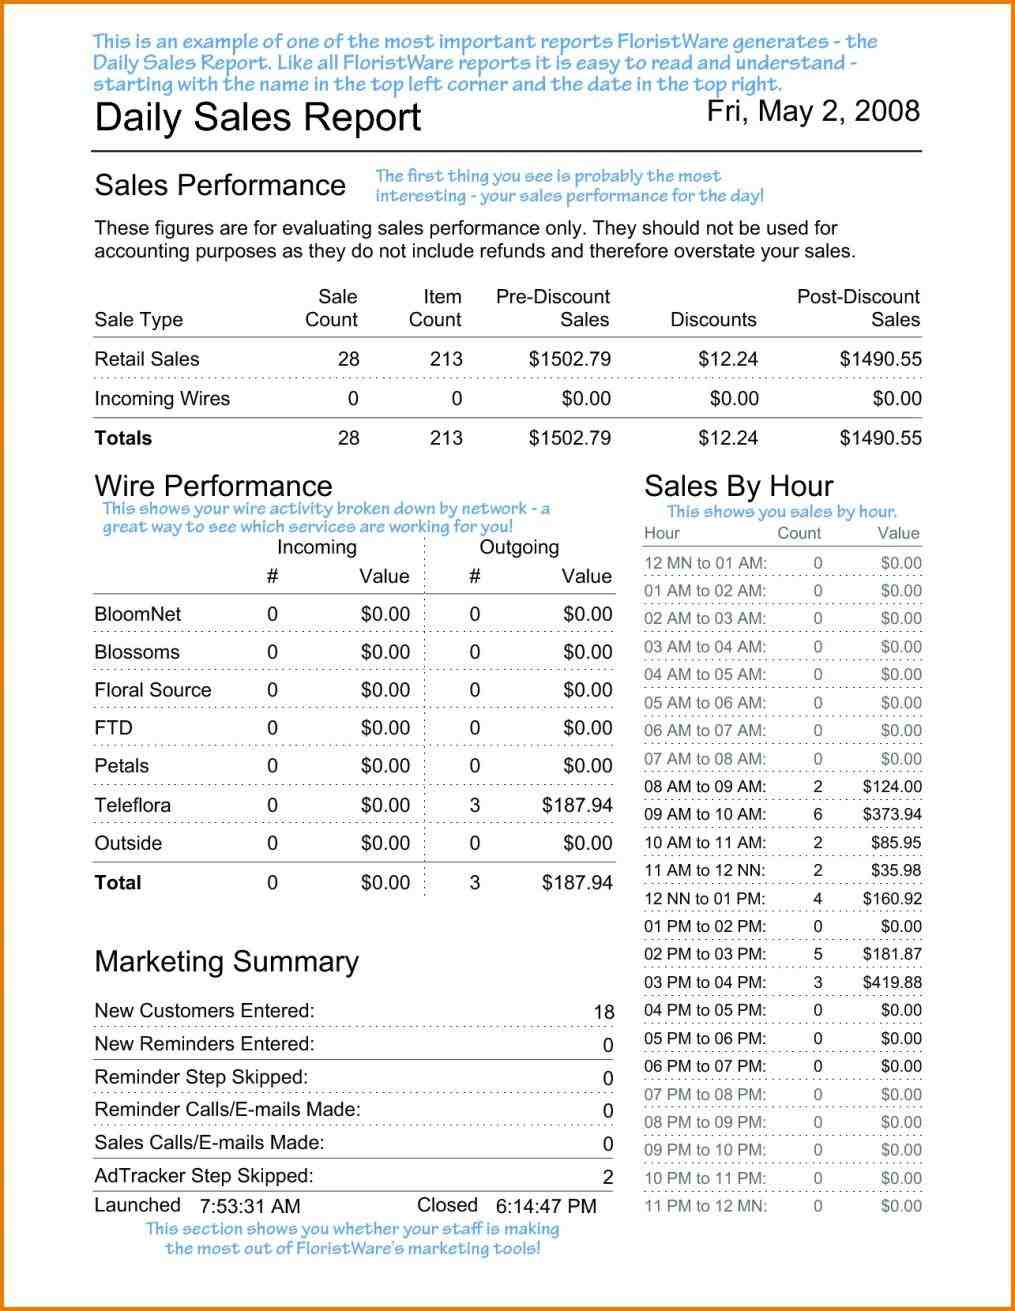 Report Template Excel sales report template excel free unique rhanotherformofreliefcom activity u complete guide examplerhteacuppoodlesus daily Daily Sales Report Template Excel